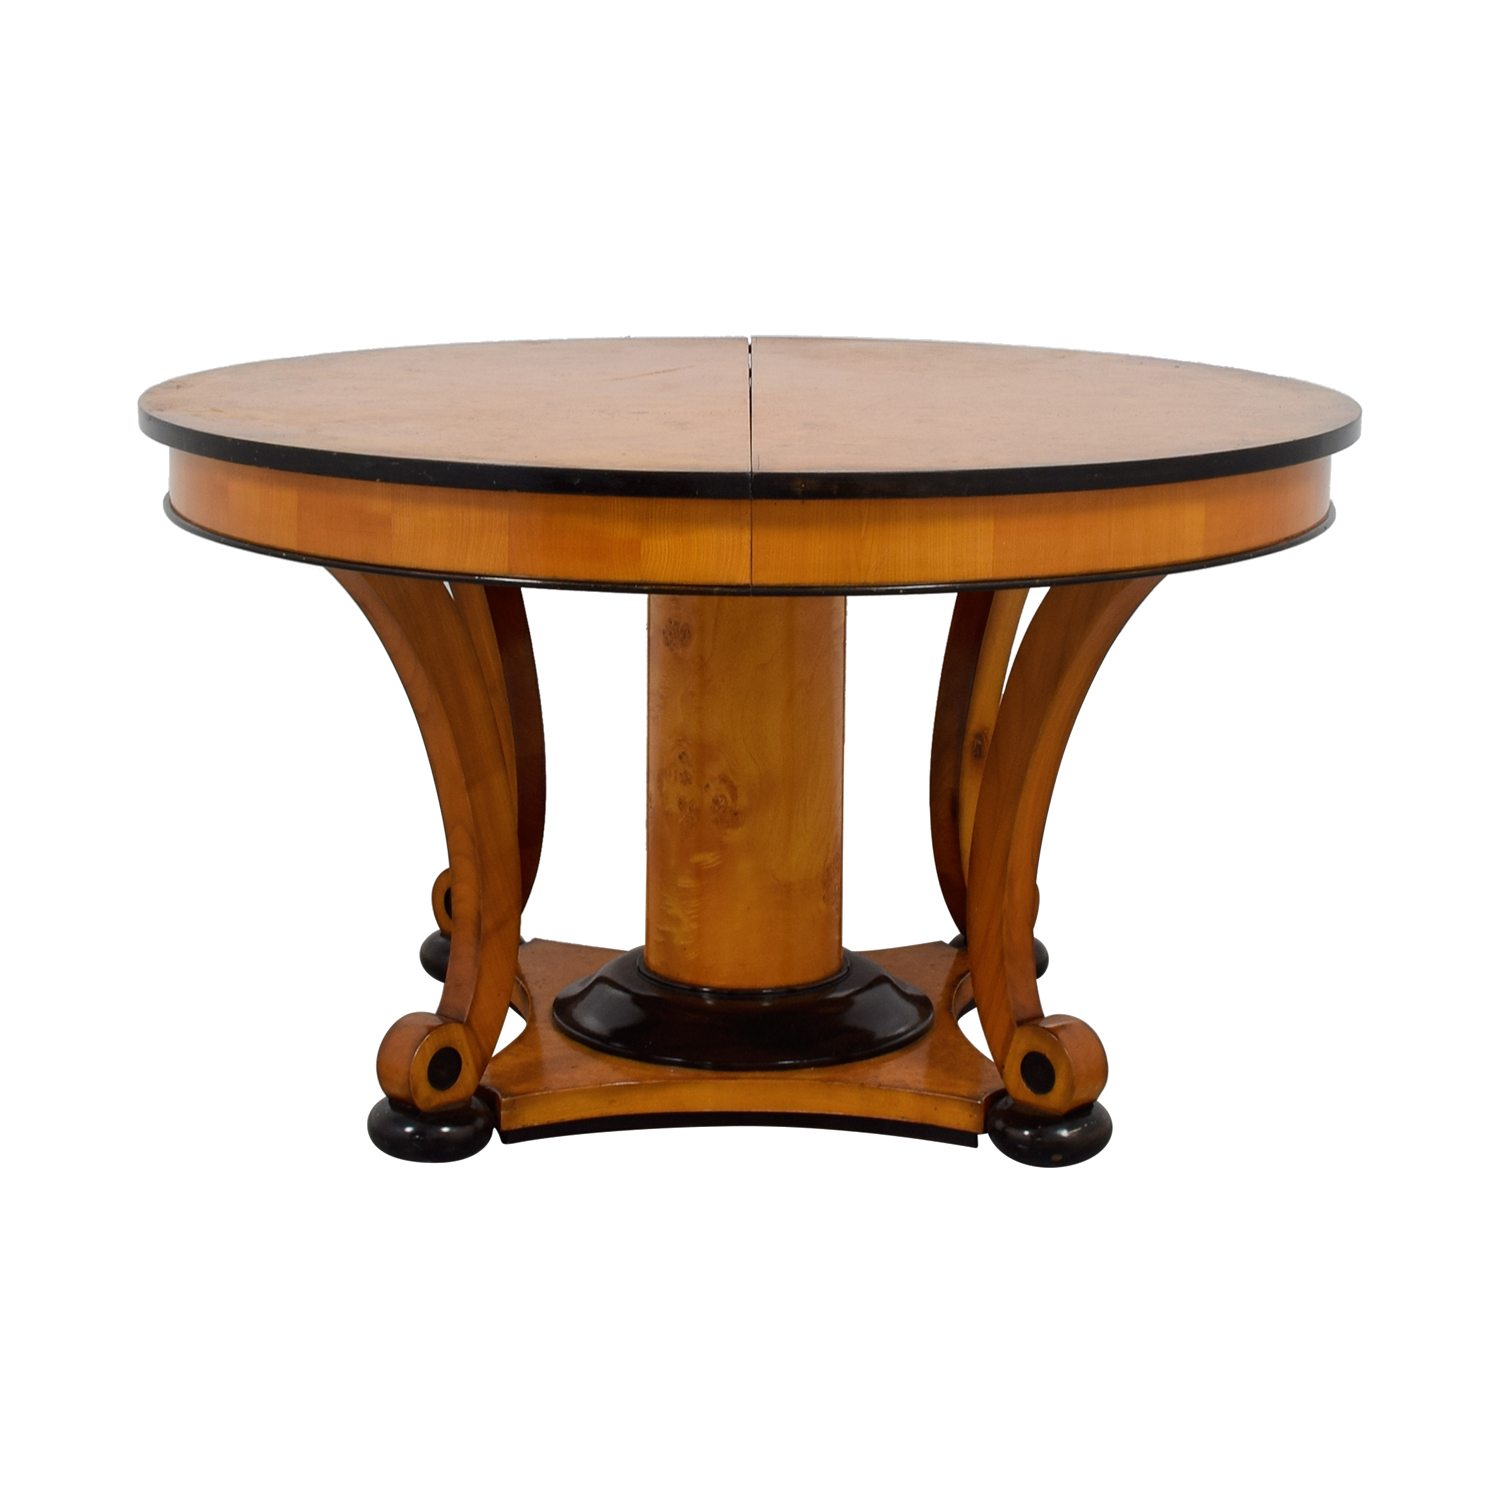 Bloomingdale's Bloomingdale's Beidermeider Round Cherry Wood  Dining Table dimensions